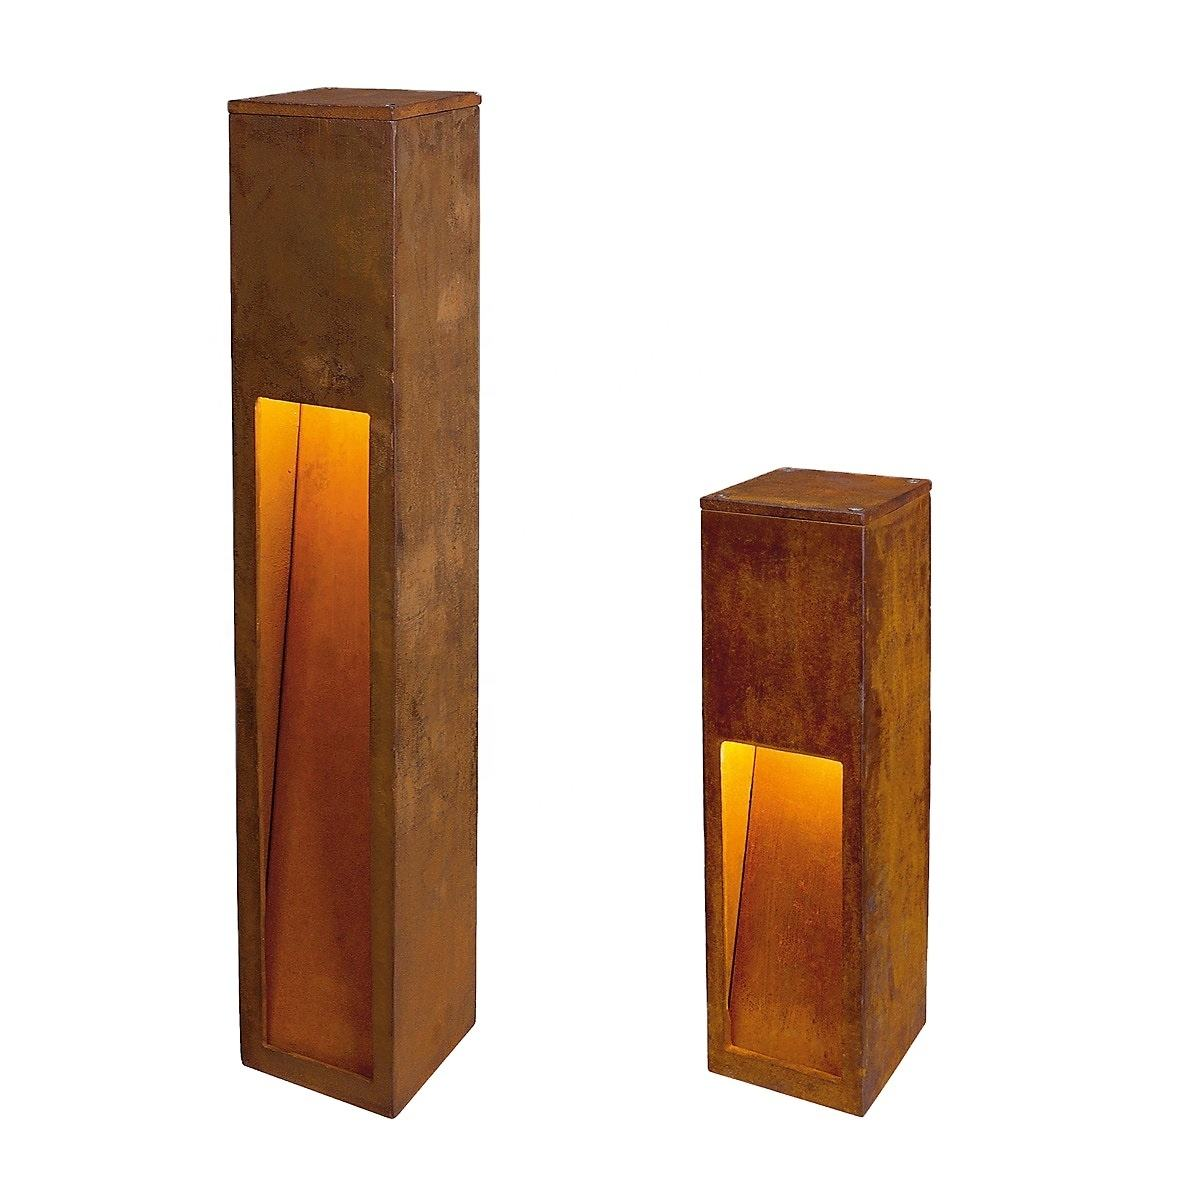 Christmas decor corten steel garden bollards with LED lighting